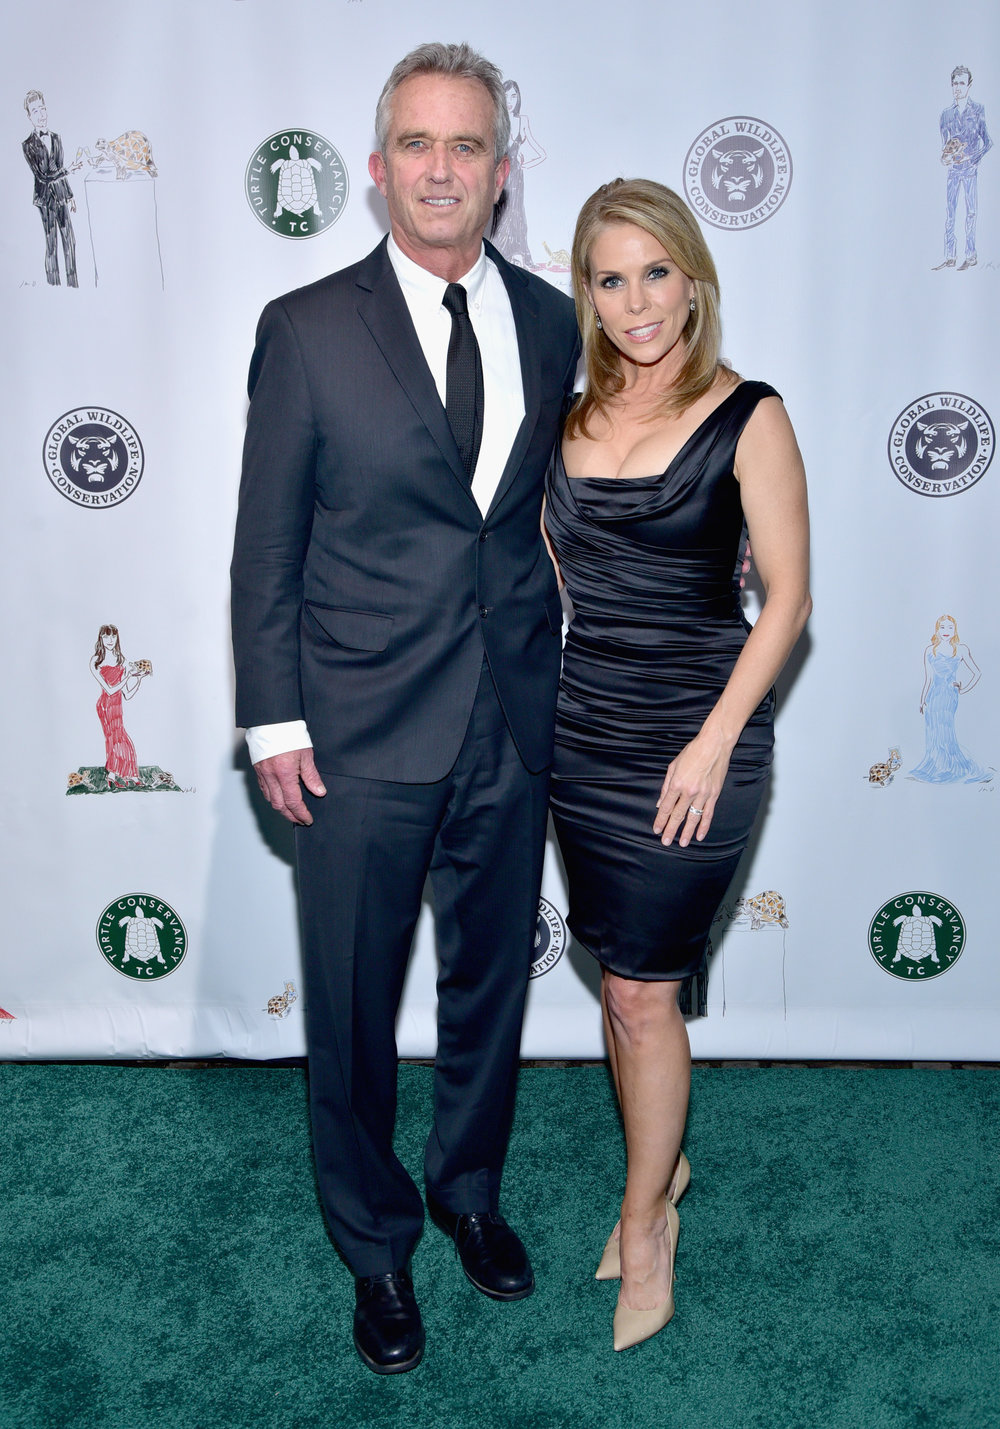 Robert F. Kennedy Jr. and Cheryl Hines